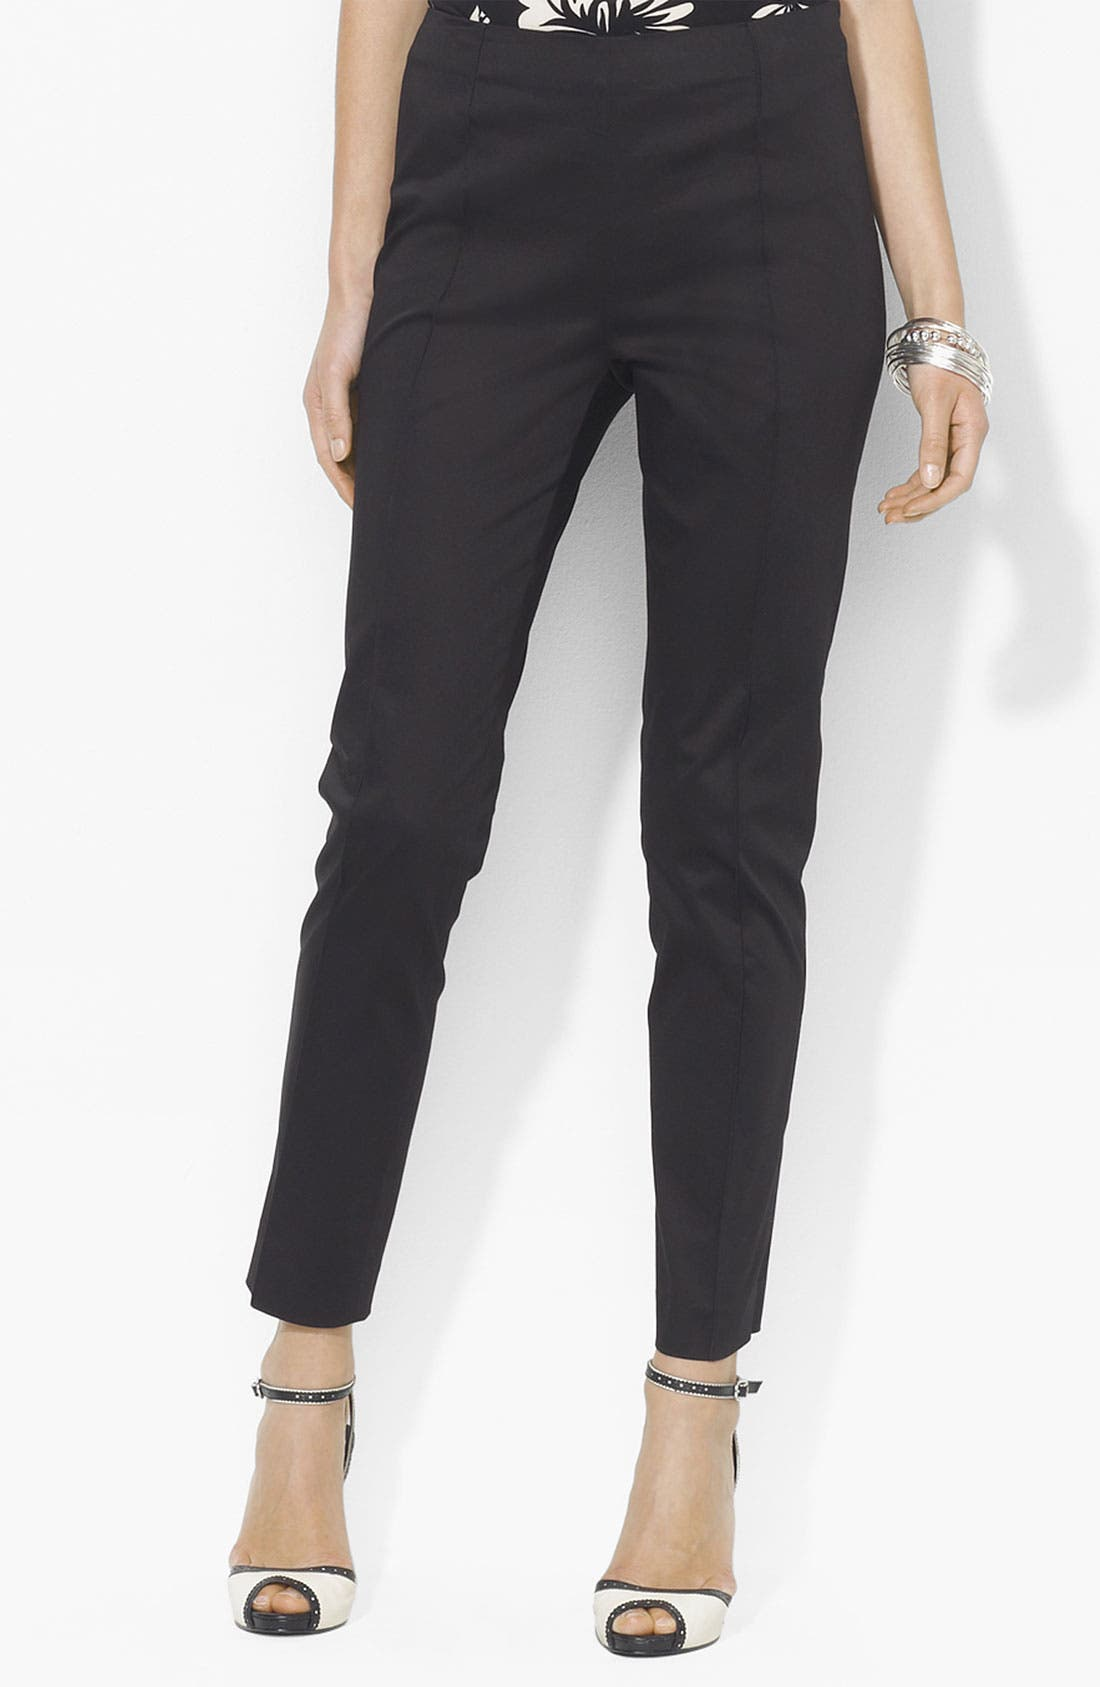 Alternate Image 1 Selected - Lauren Ralph Lauren Side Zip Ankle Pants (Petite) (Online Exclusive)